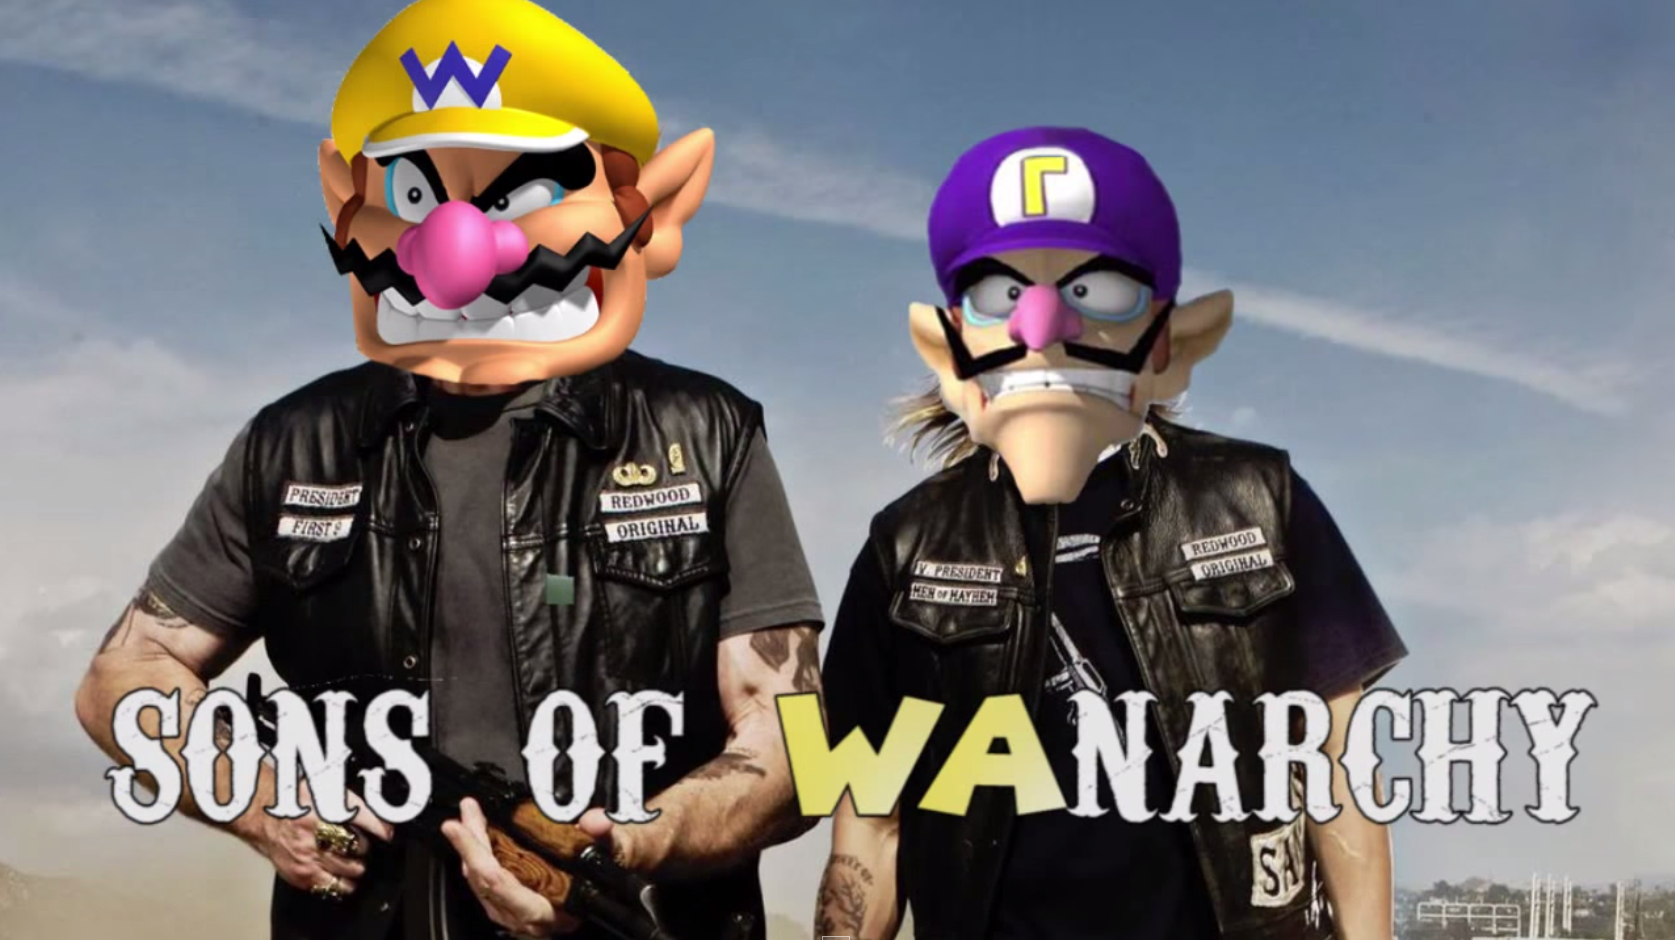 Sons Of Wanarchy Super Mario Know Your Meme